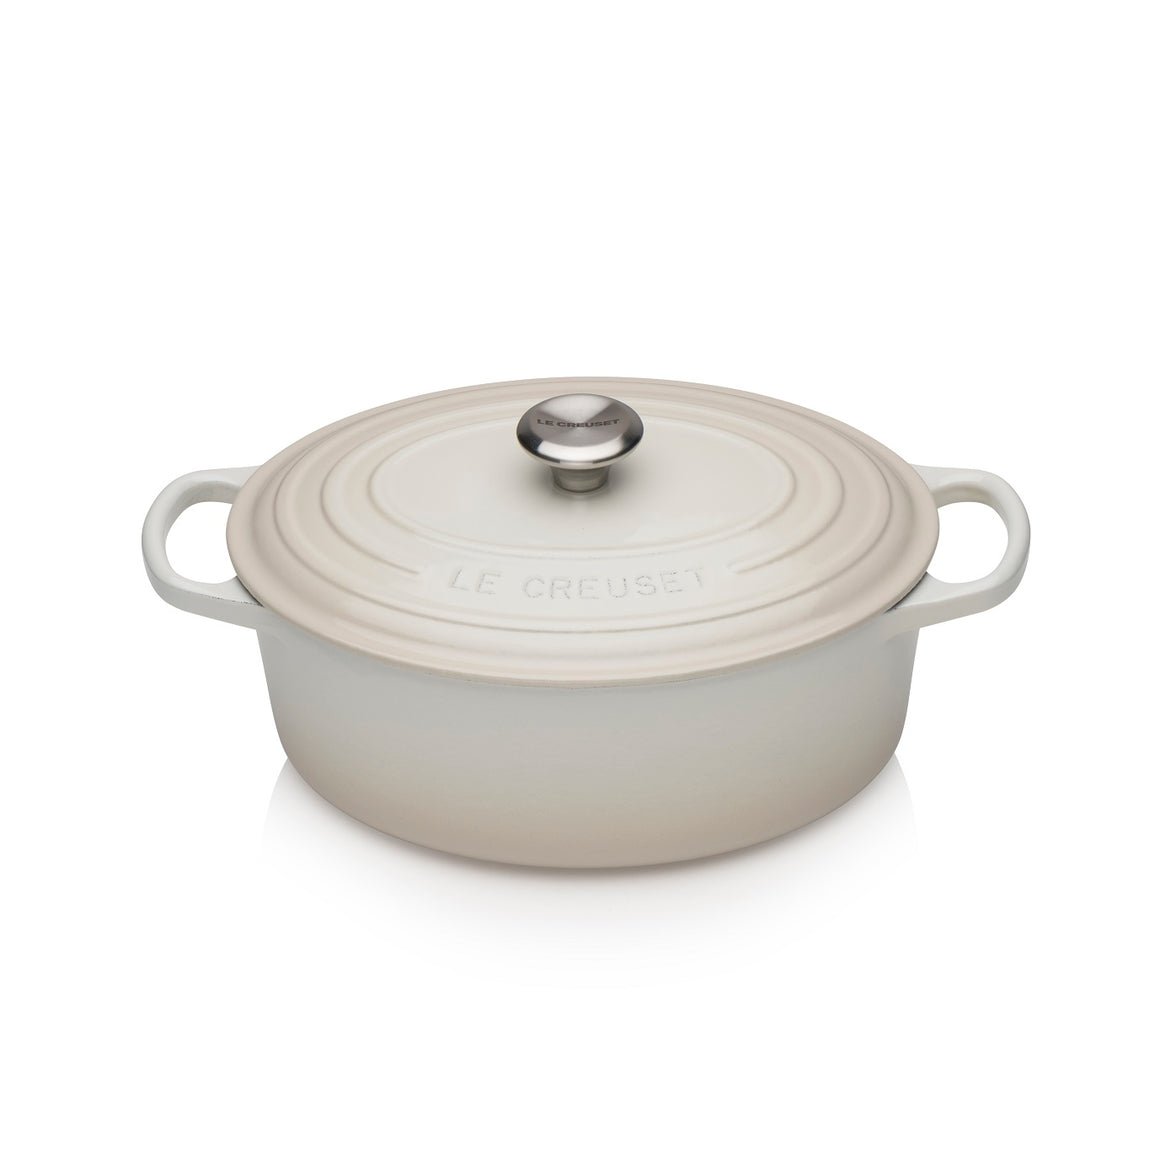 Le Creuset Signature Meringue Oval Casserole - All Sizes